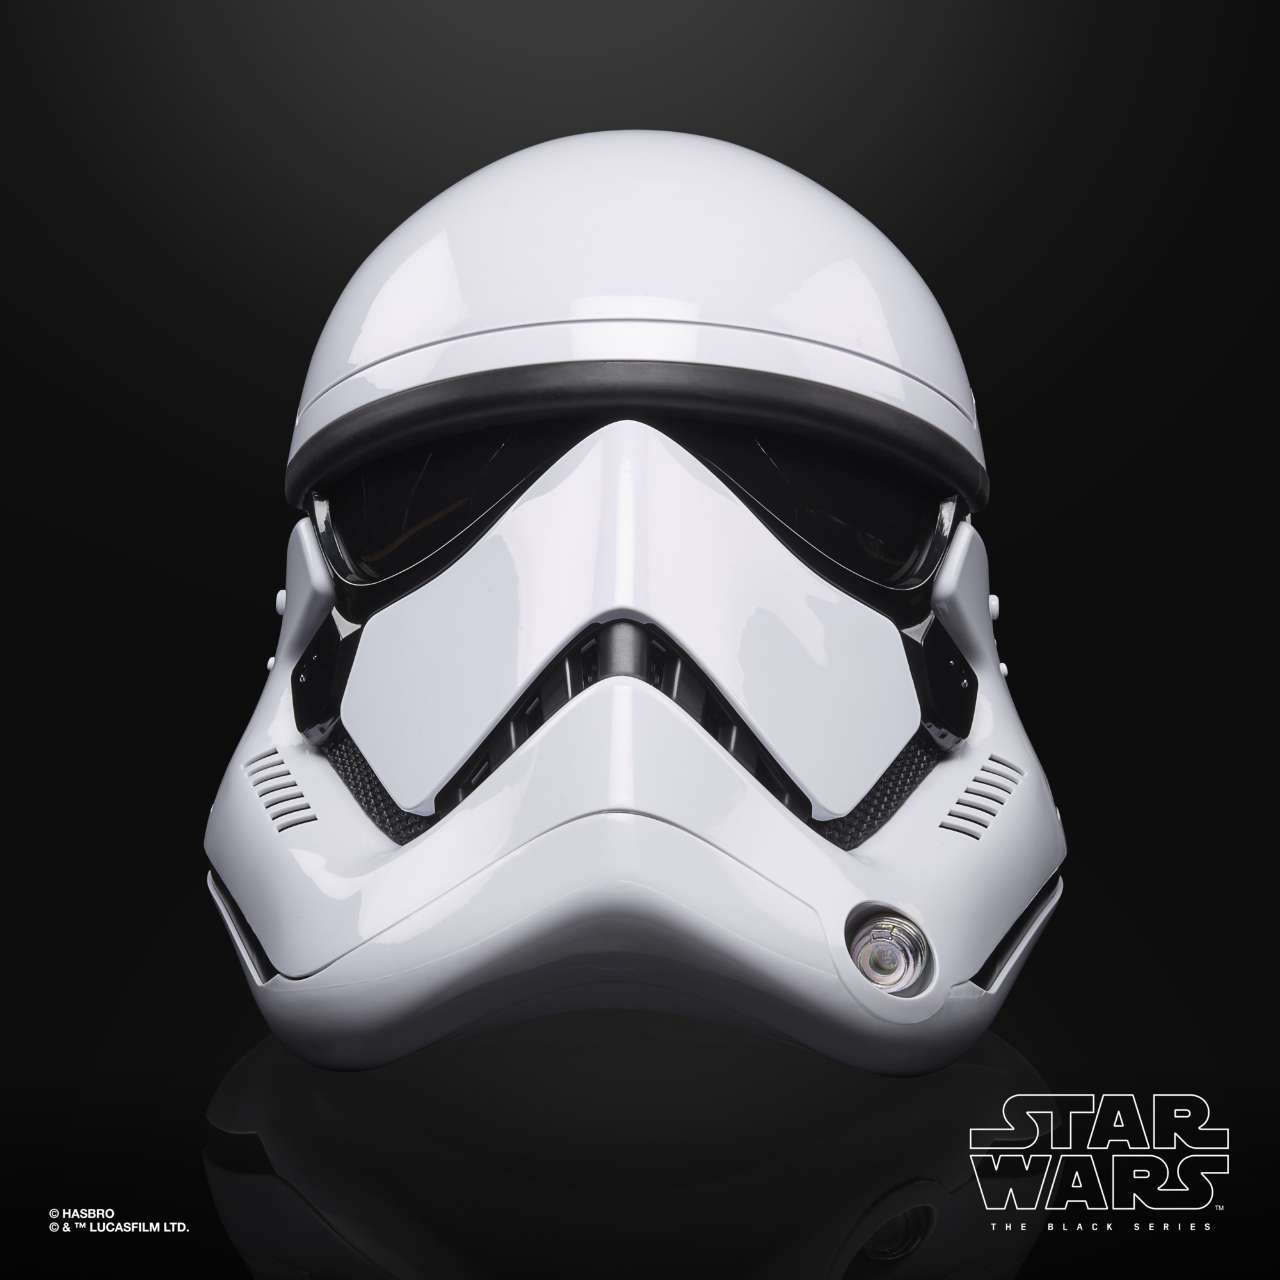 STAR WARS THE BLACK SERIES FIRST ORDER STORMTROOPER ELECTRONIC HELMET - oop (2)